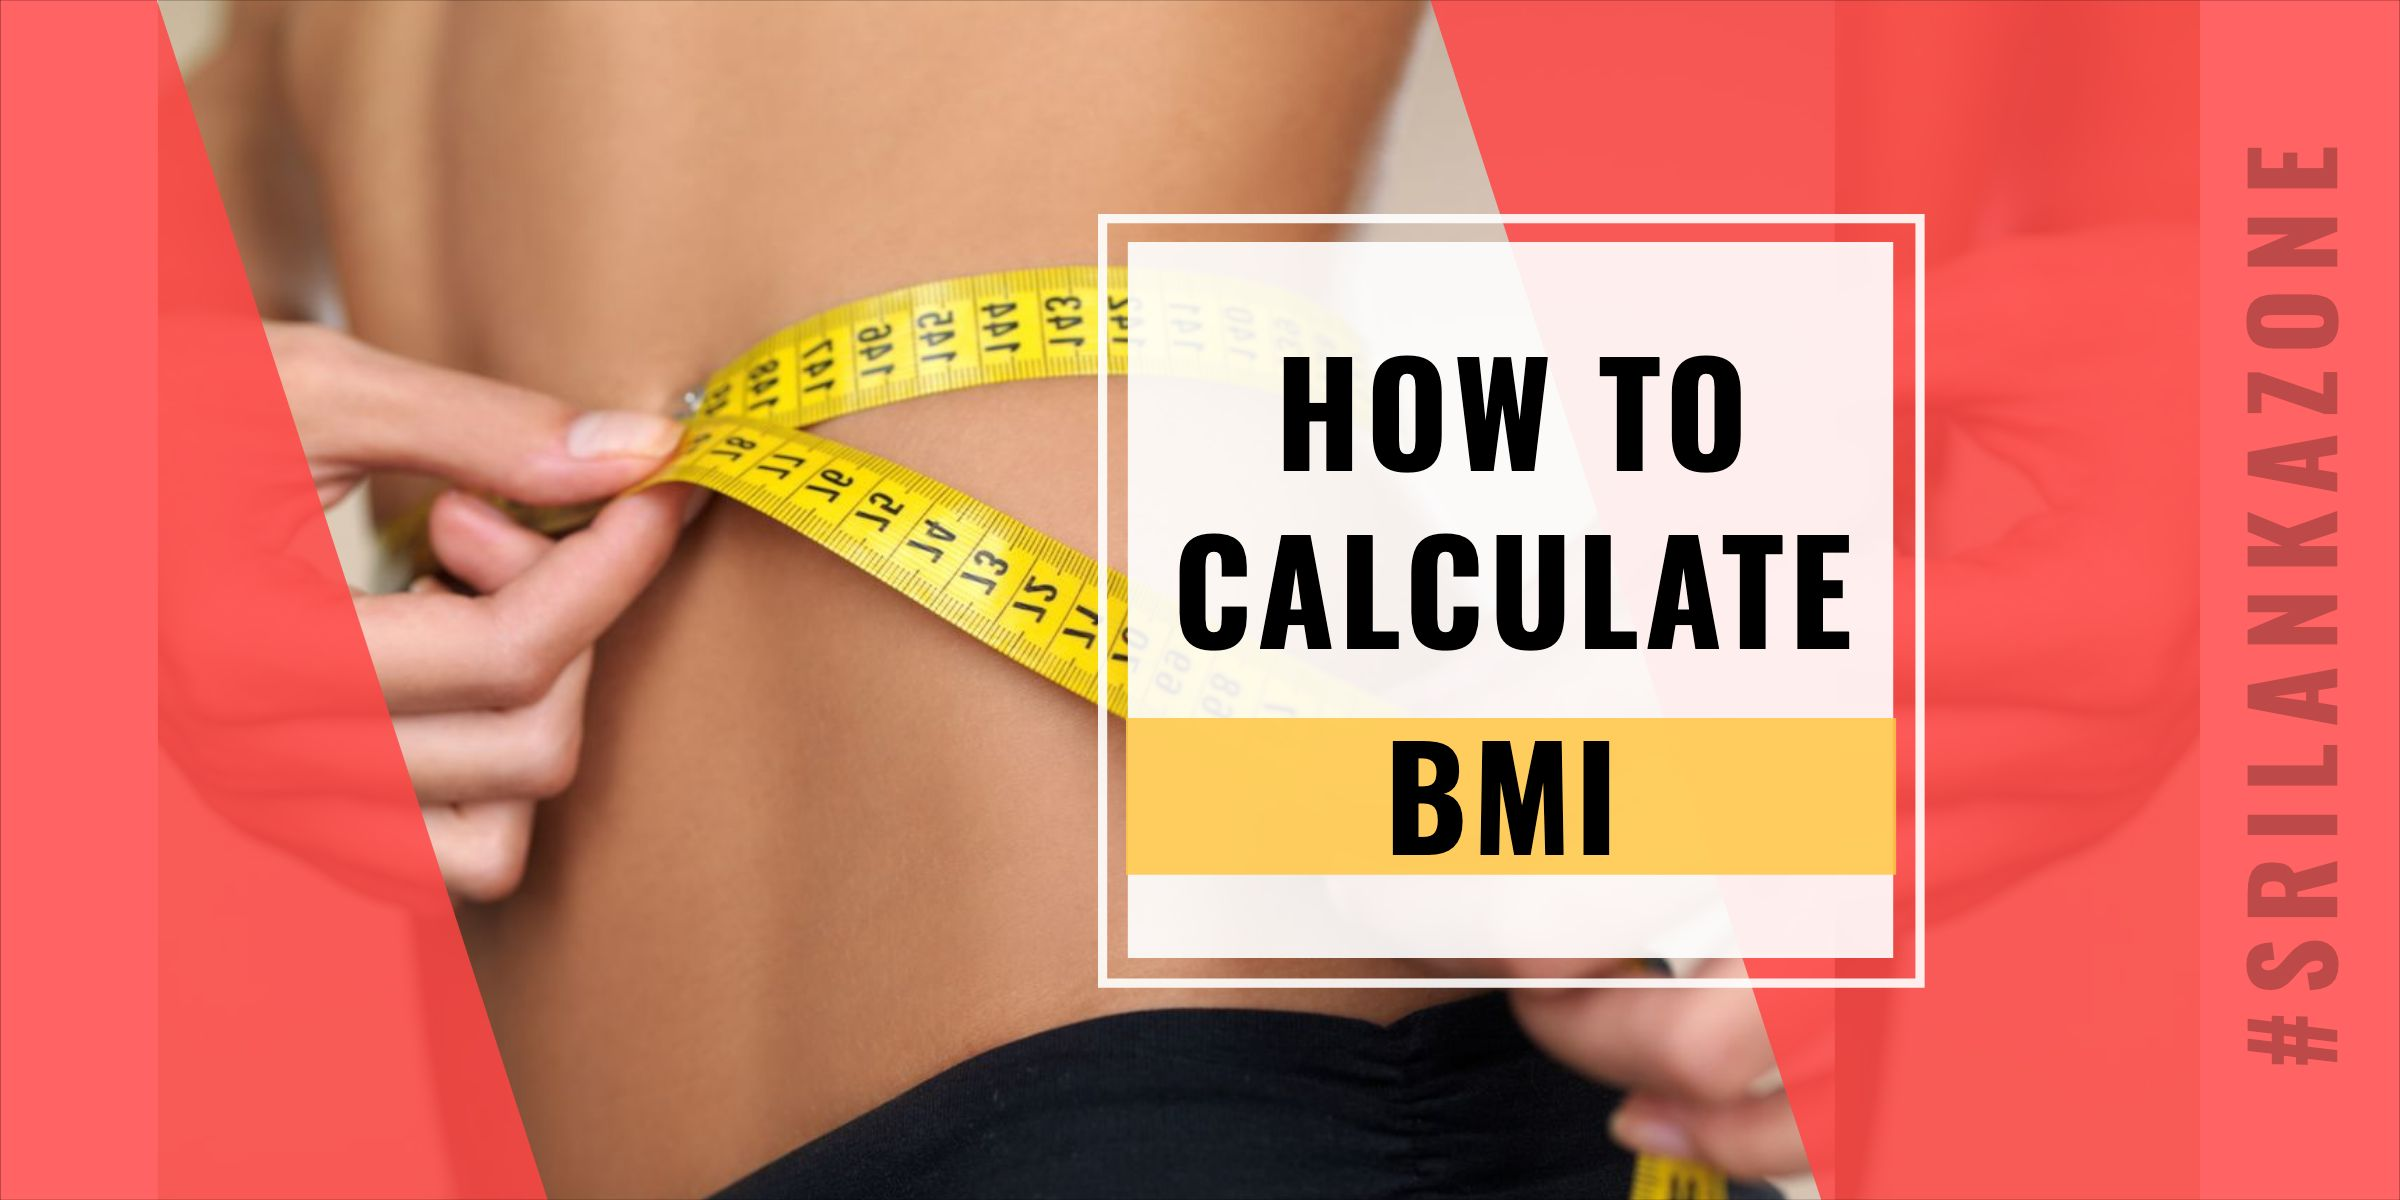 How to calculate BMI (Body Mass Index)